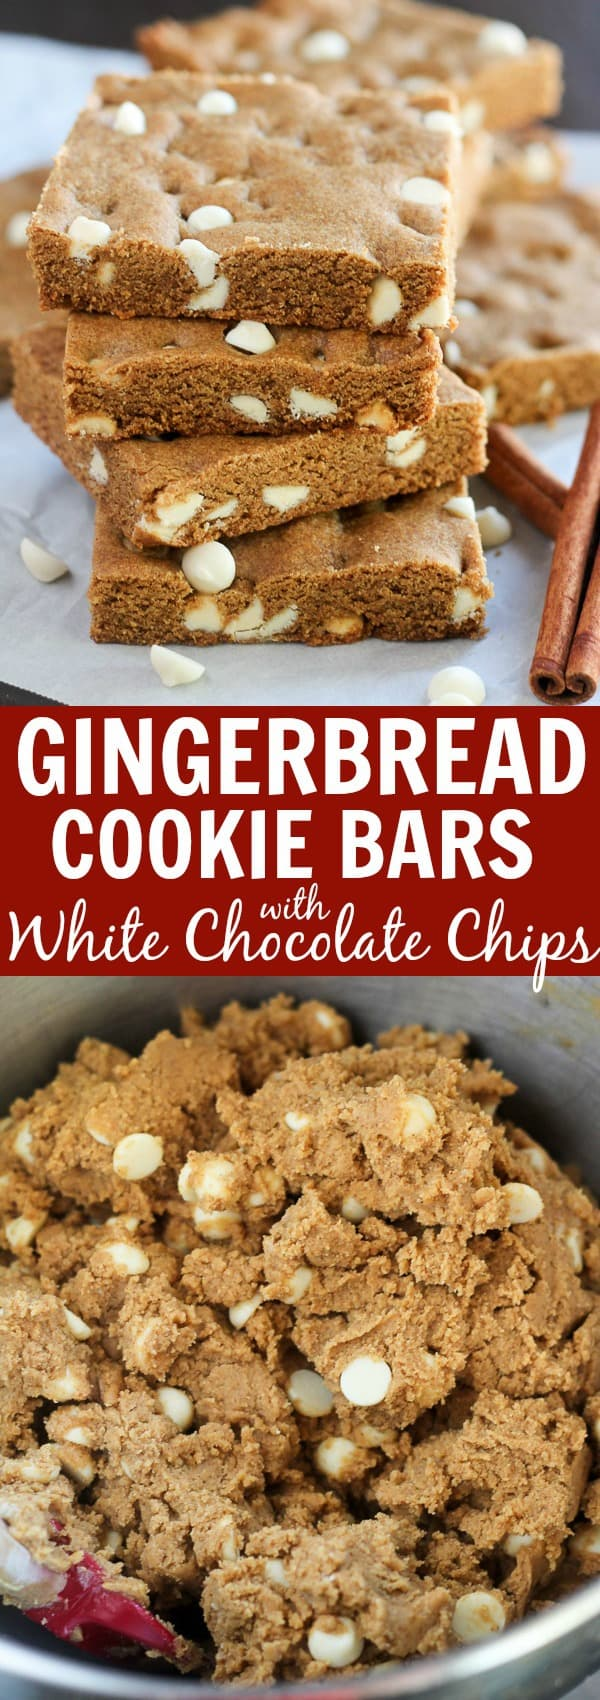 Gingerbread Bars Filled with White Chocolate Chips